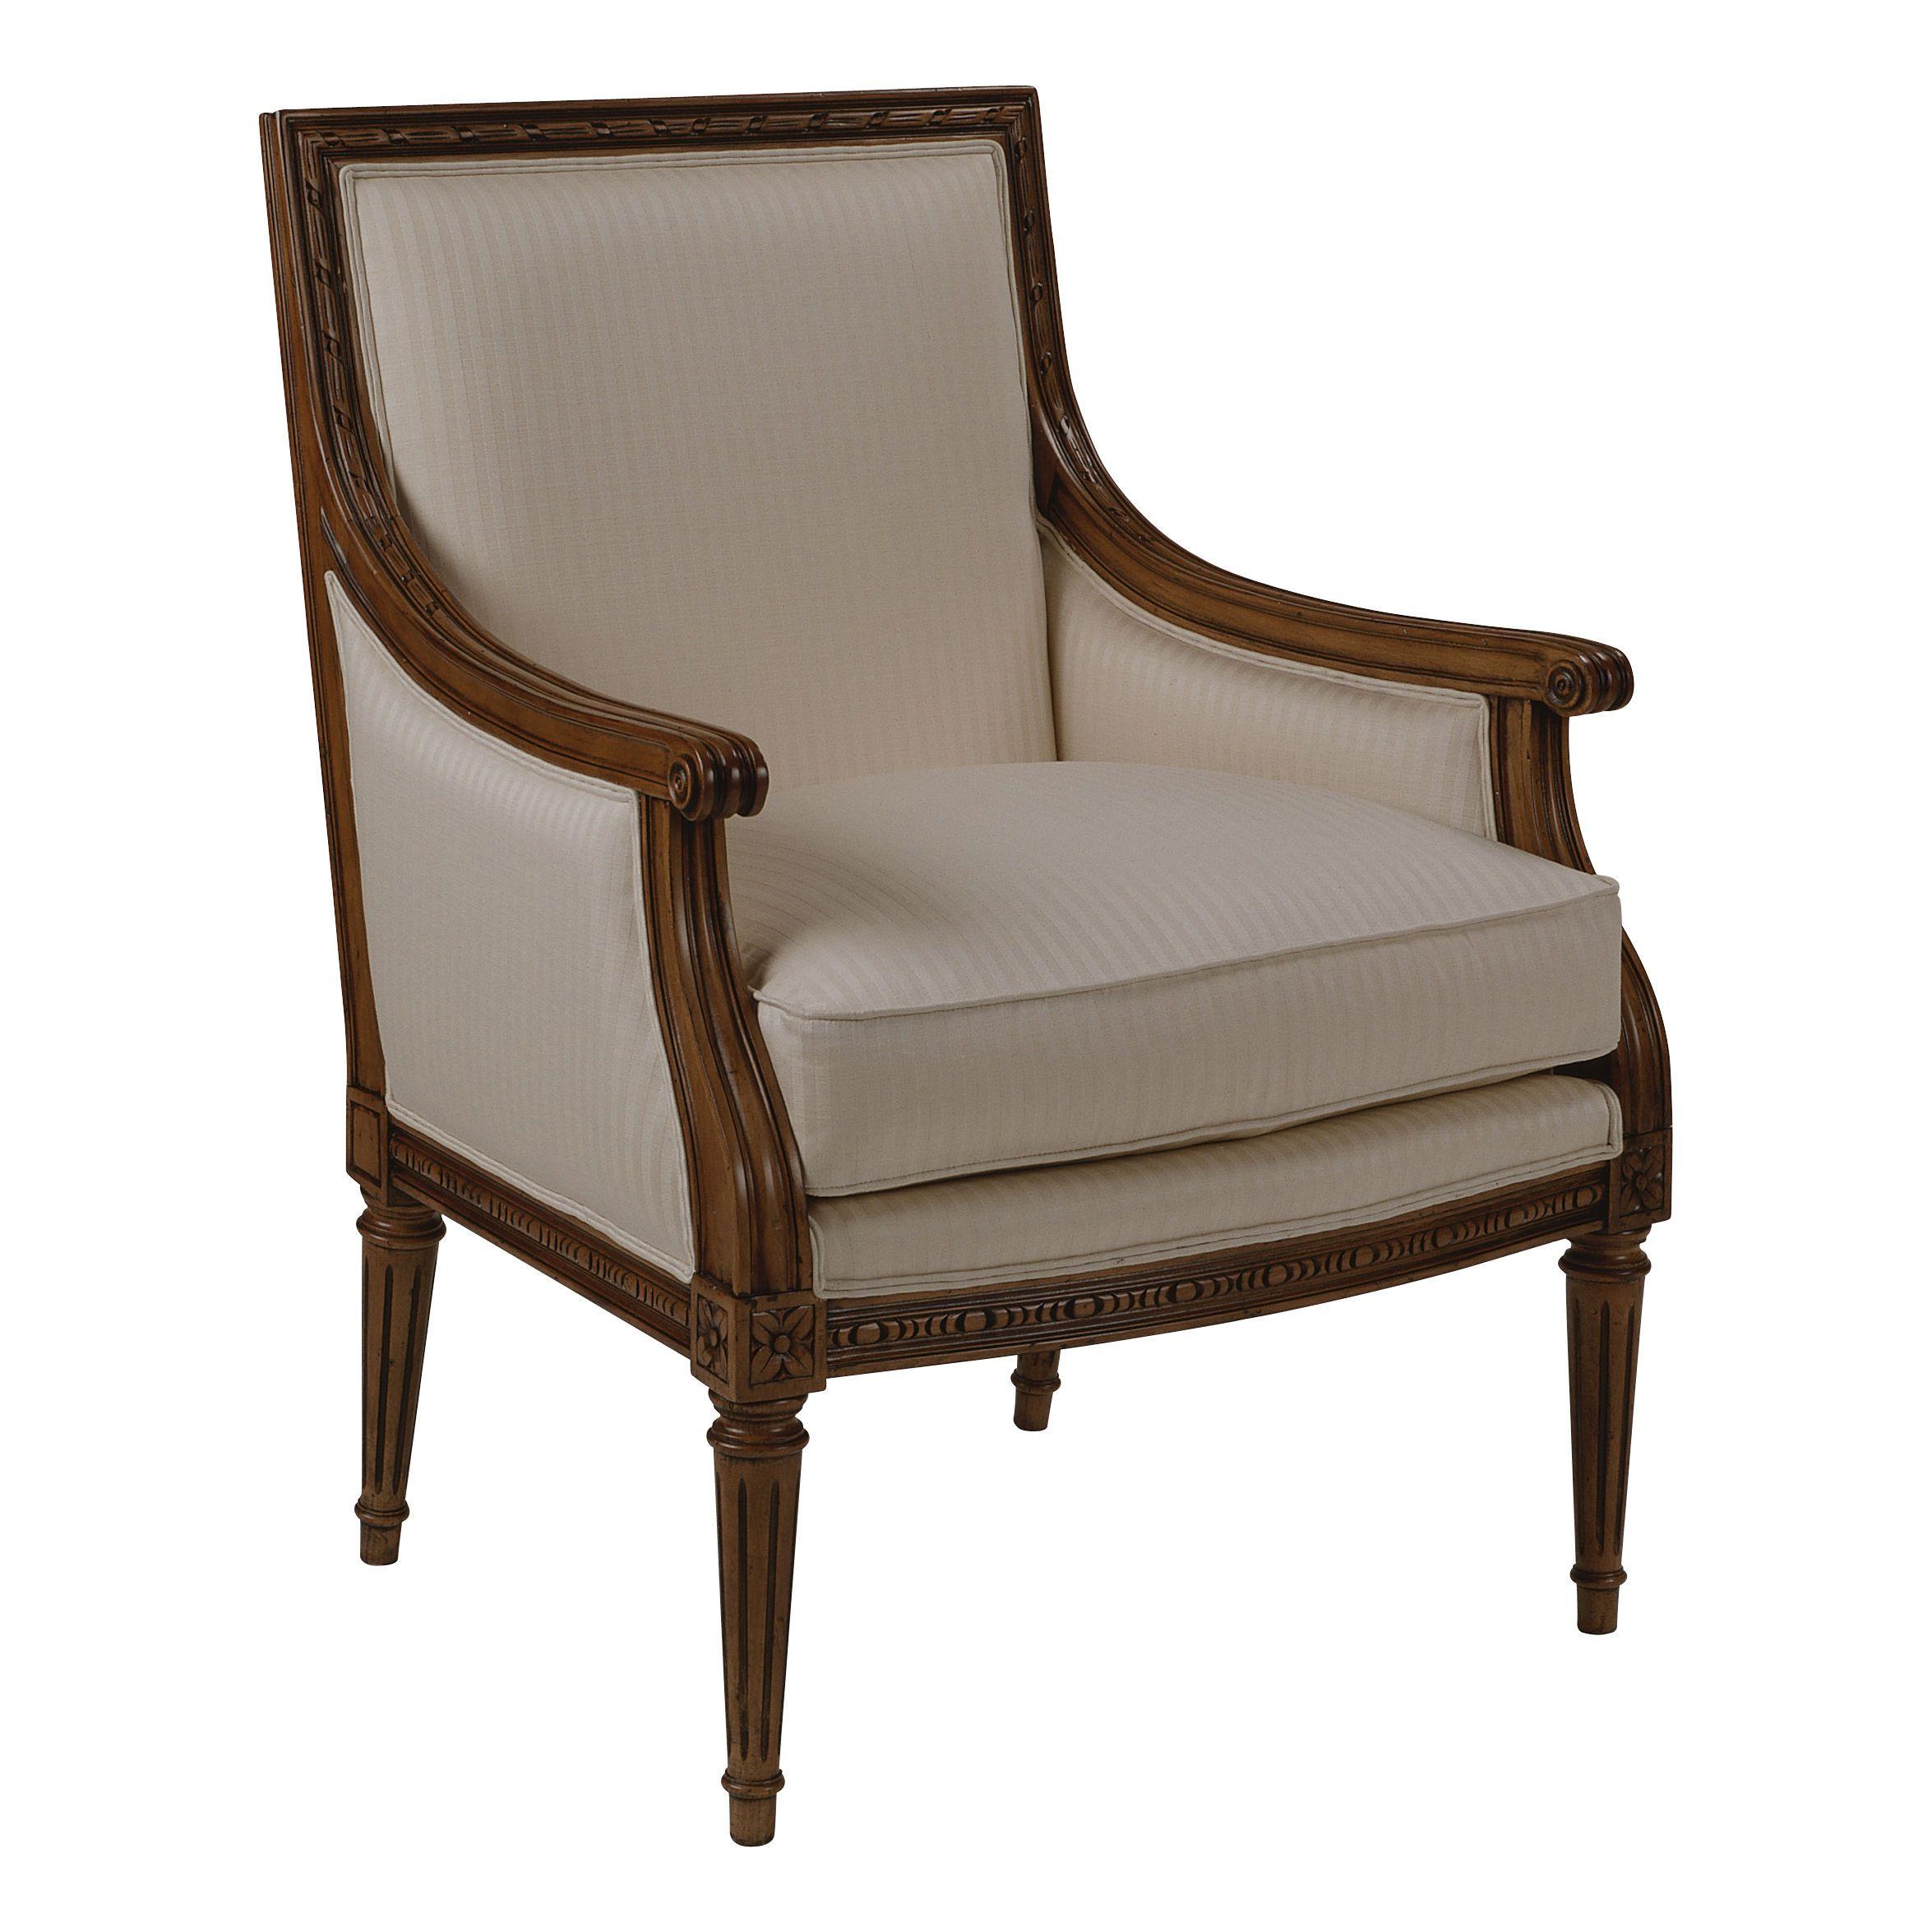 Giselle Chair Accent Chairs For Living Room Chair Furniture